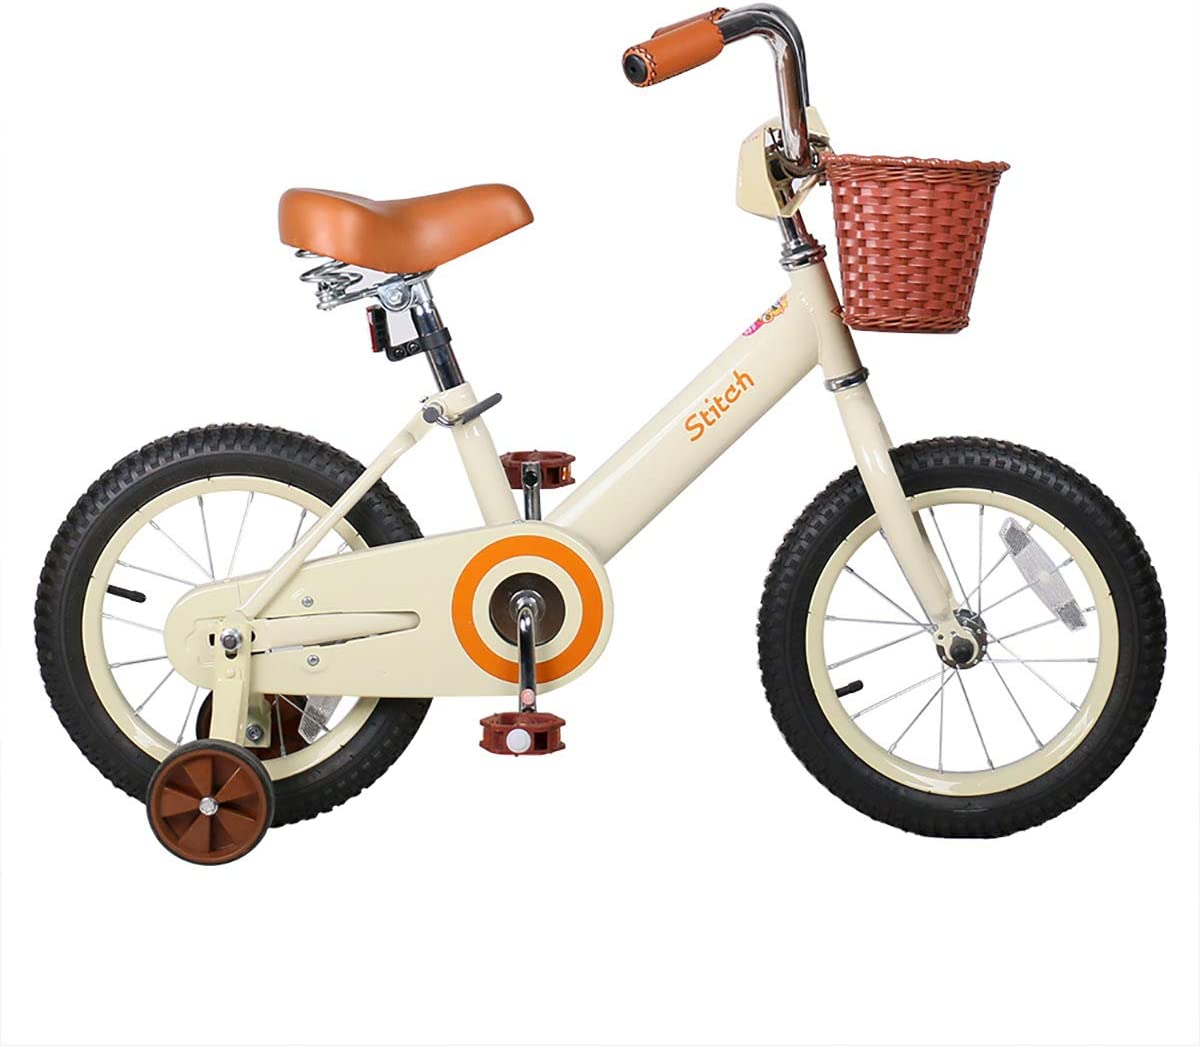 JOYSTAR 14 & 16 Inch Kids Bike with Basket & Training Wheels for 3-7 Years Old Girls & Boys (Beige & Pink)